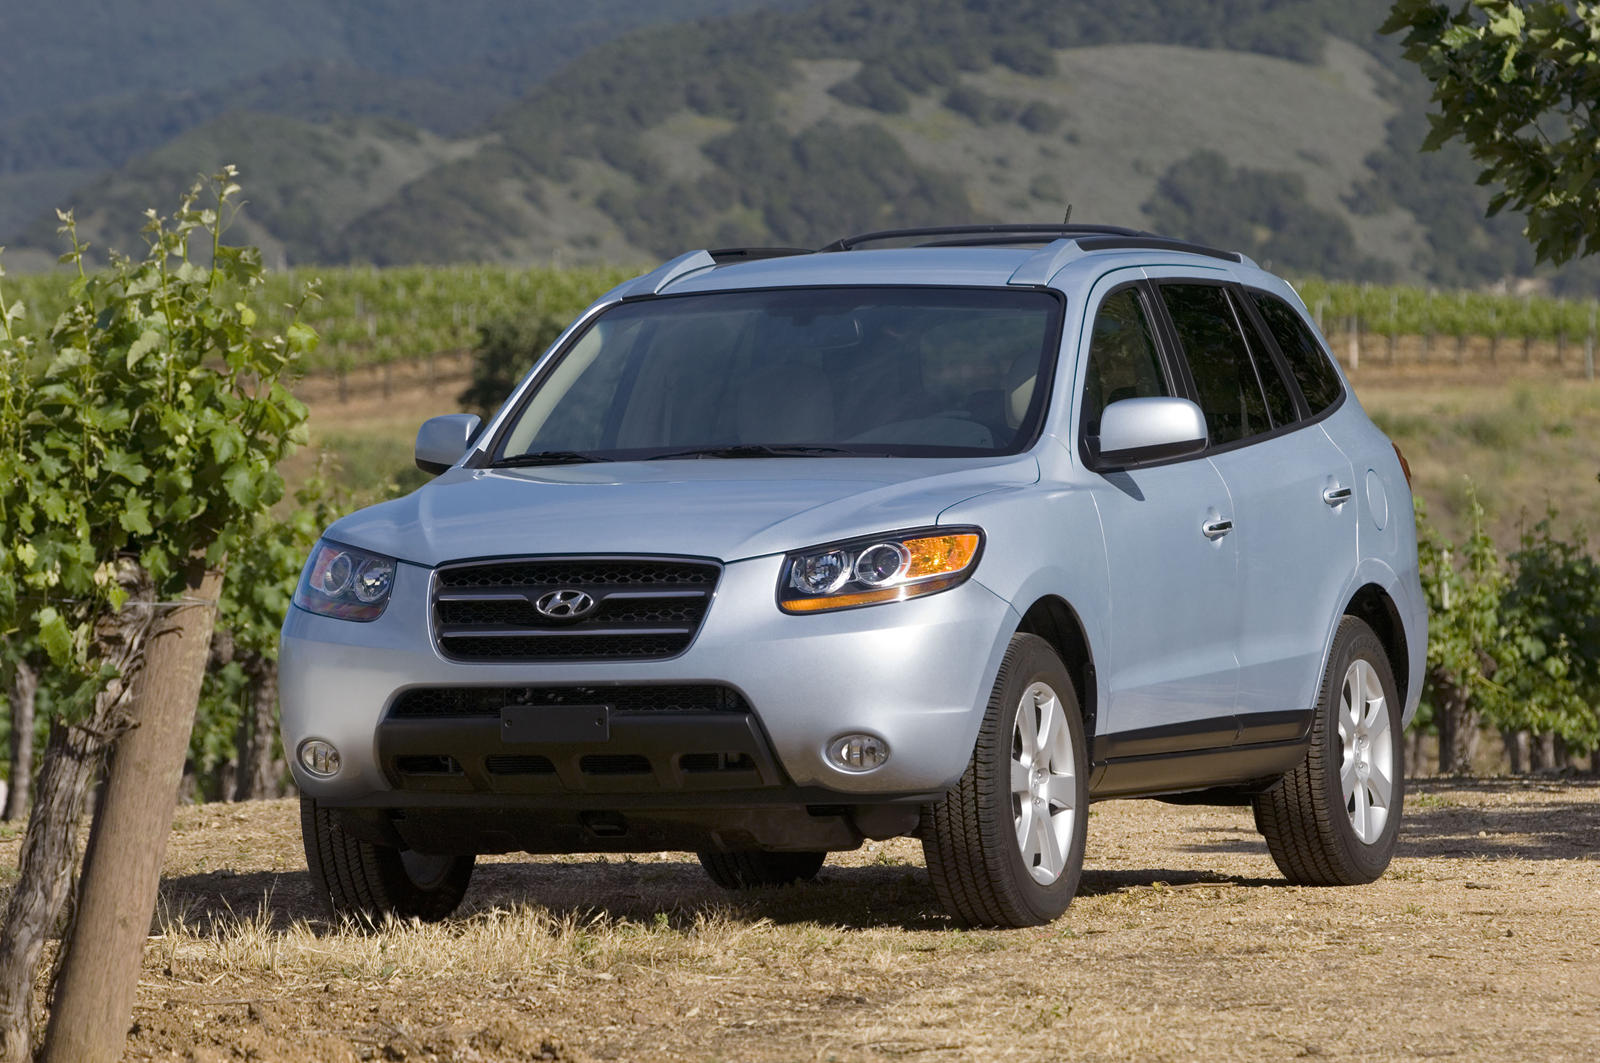 2009 Hyundai Santa Fe: Review, Trims, Specs, Price, New ...